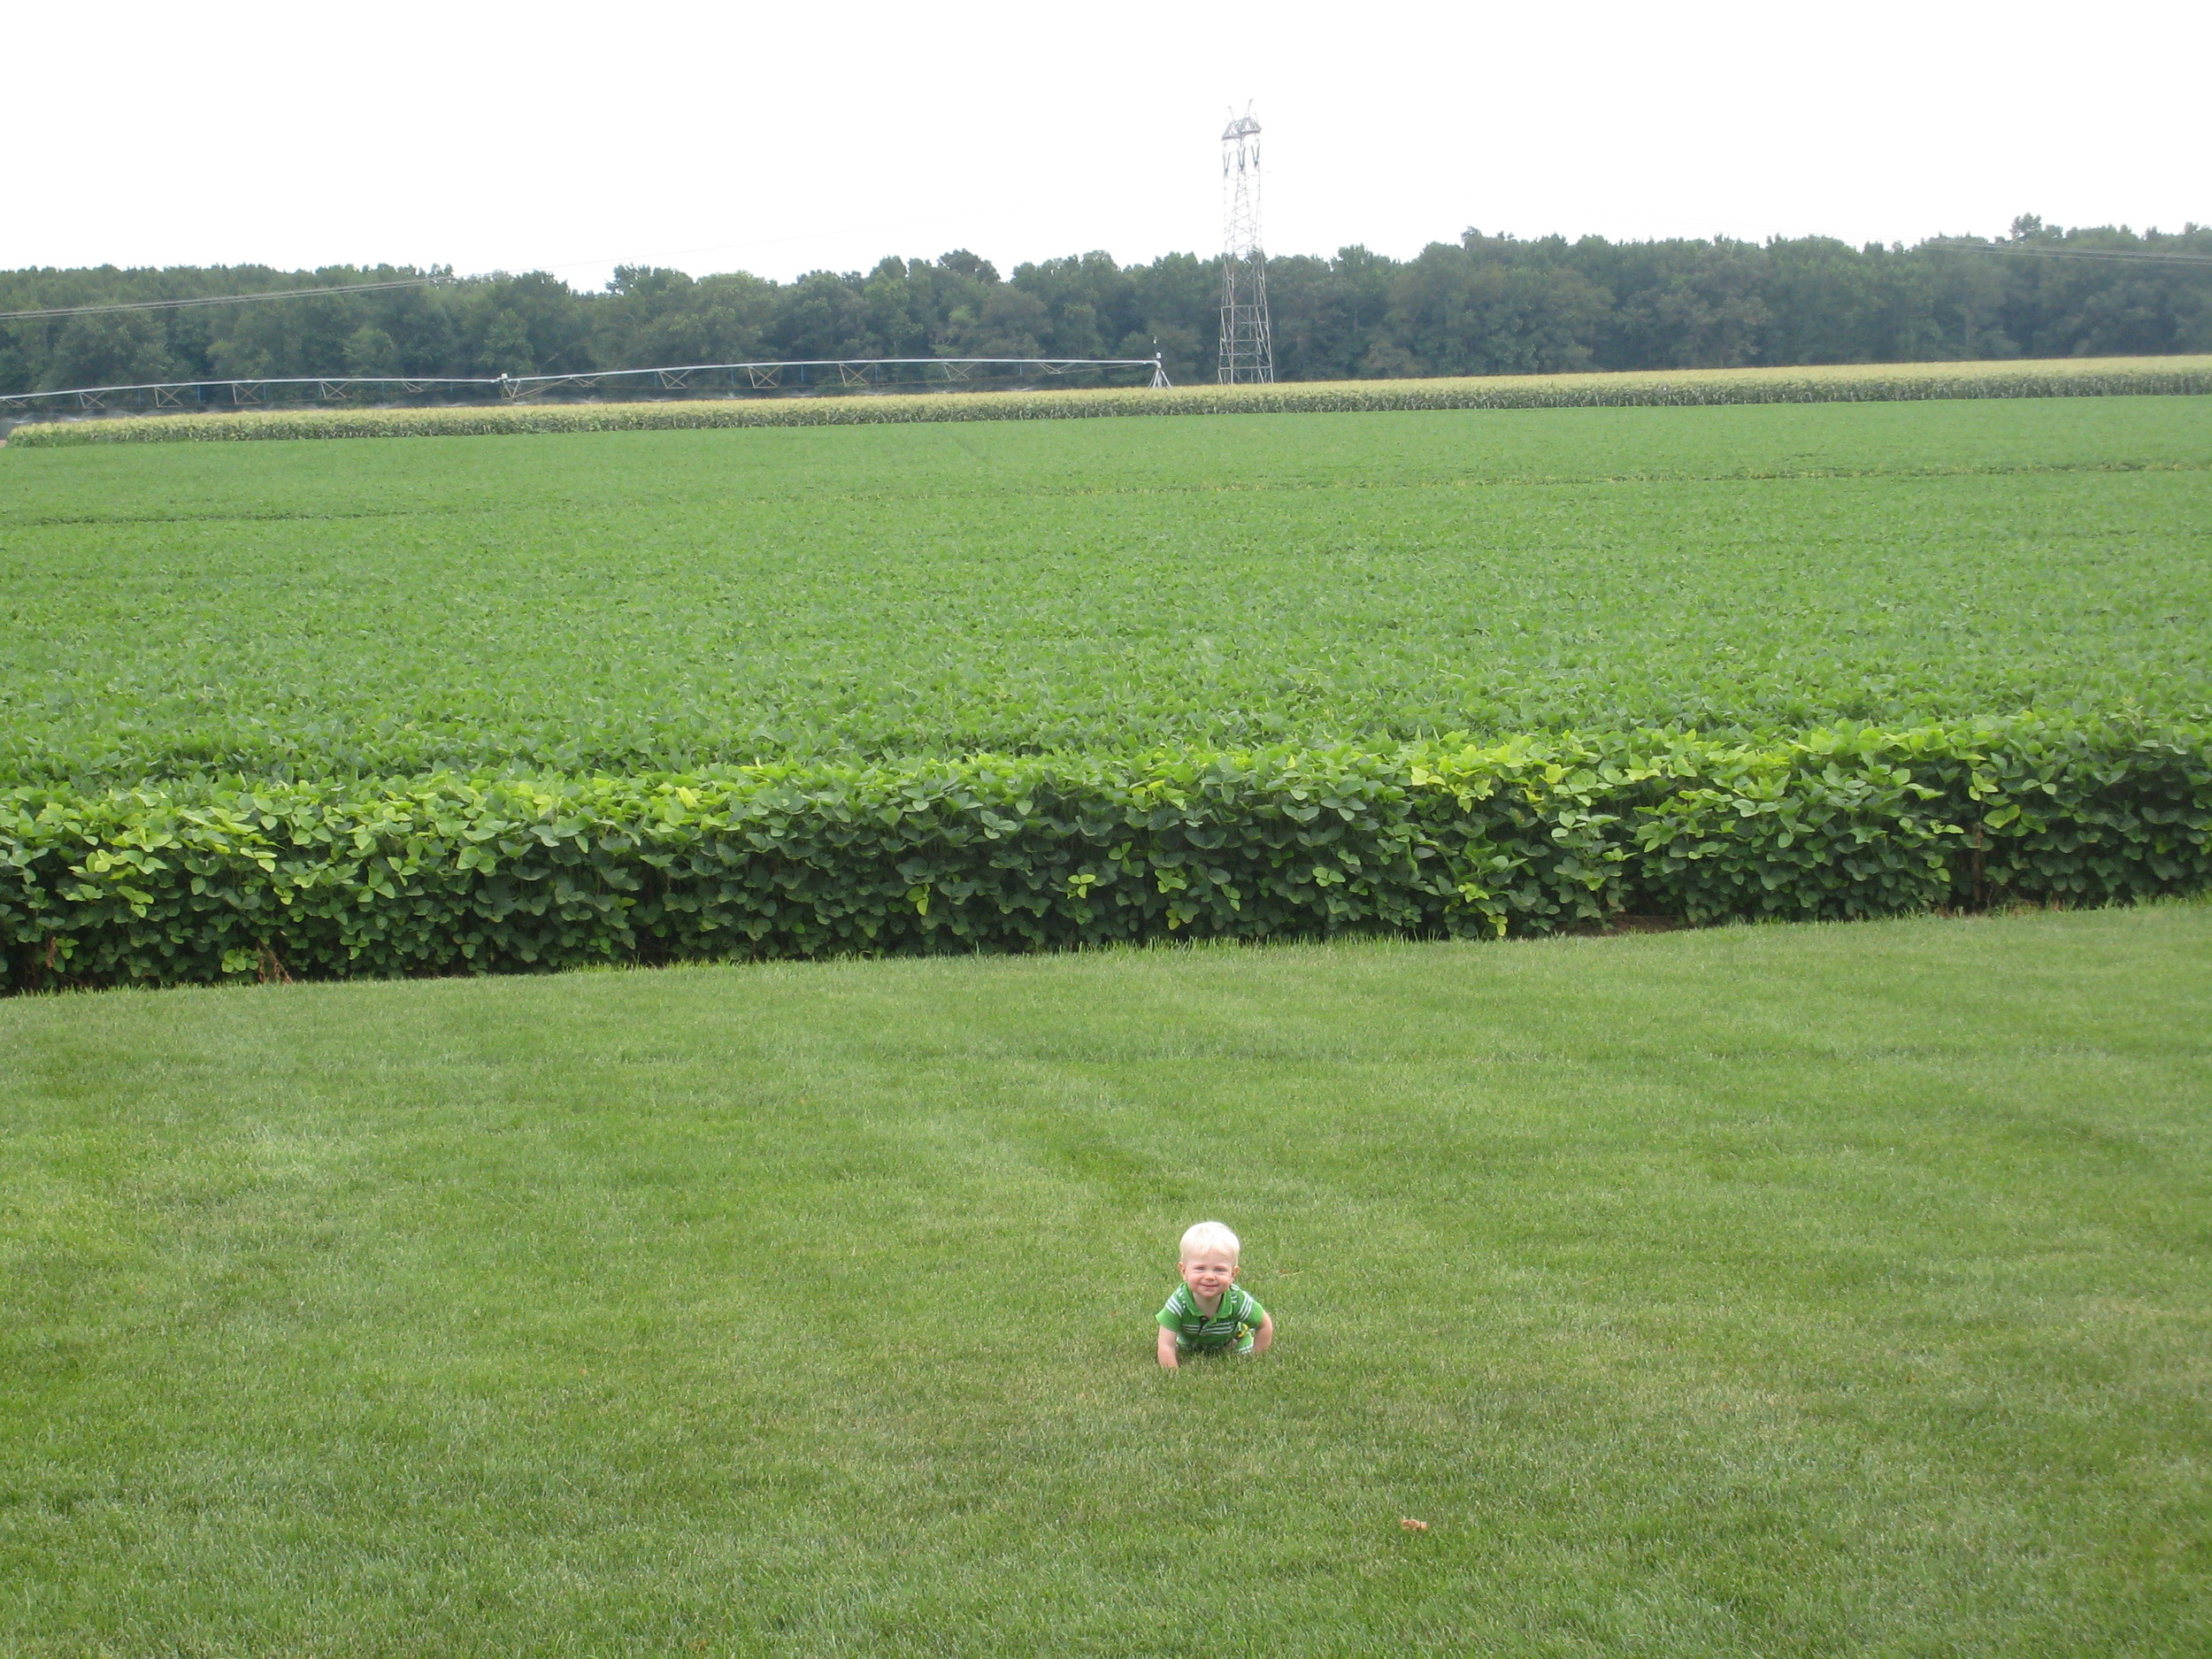 Lee Coombs in front of soybeans at Joe Coombs Farm, 2010